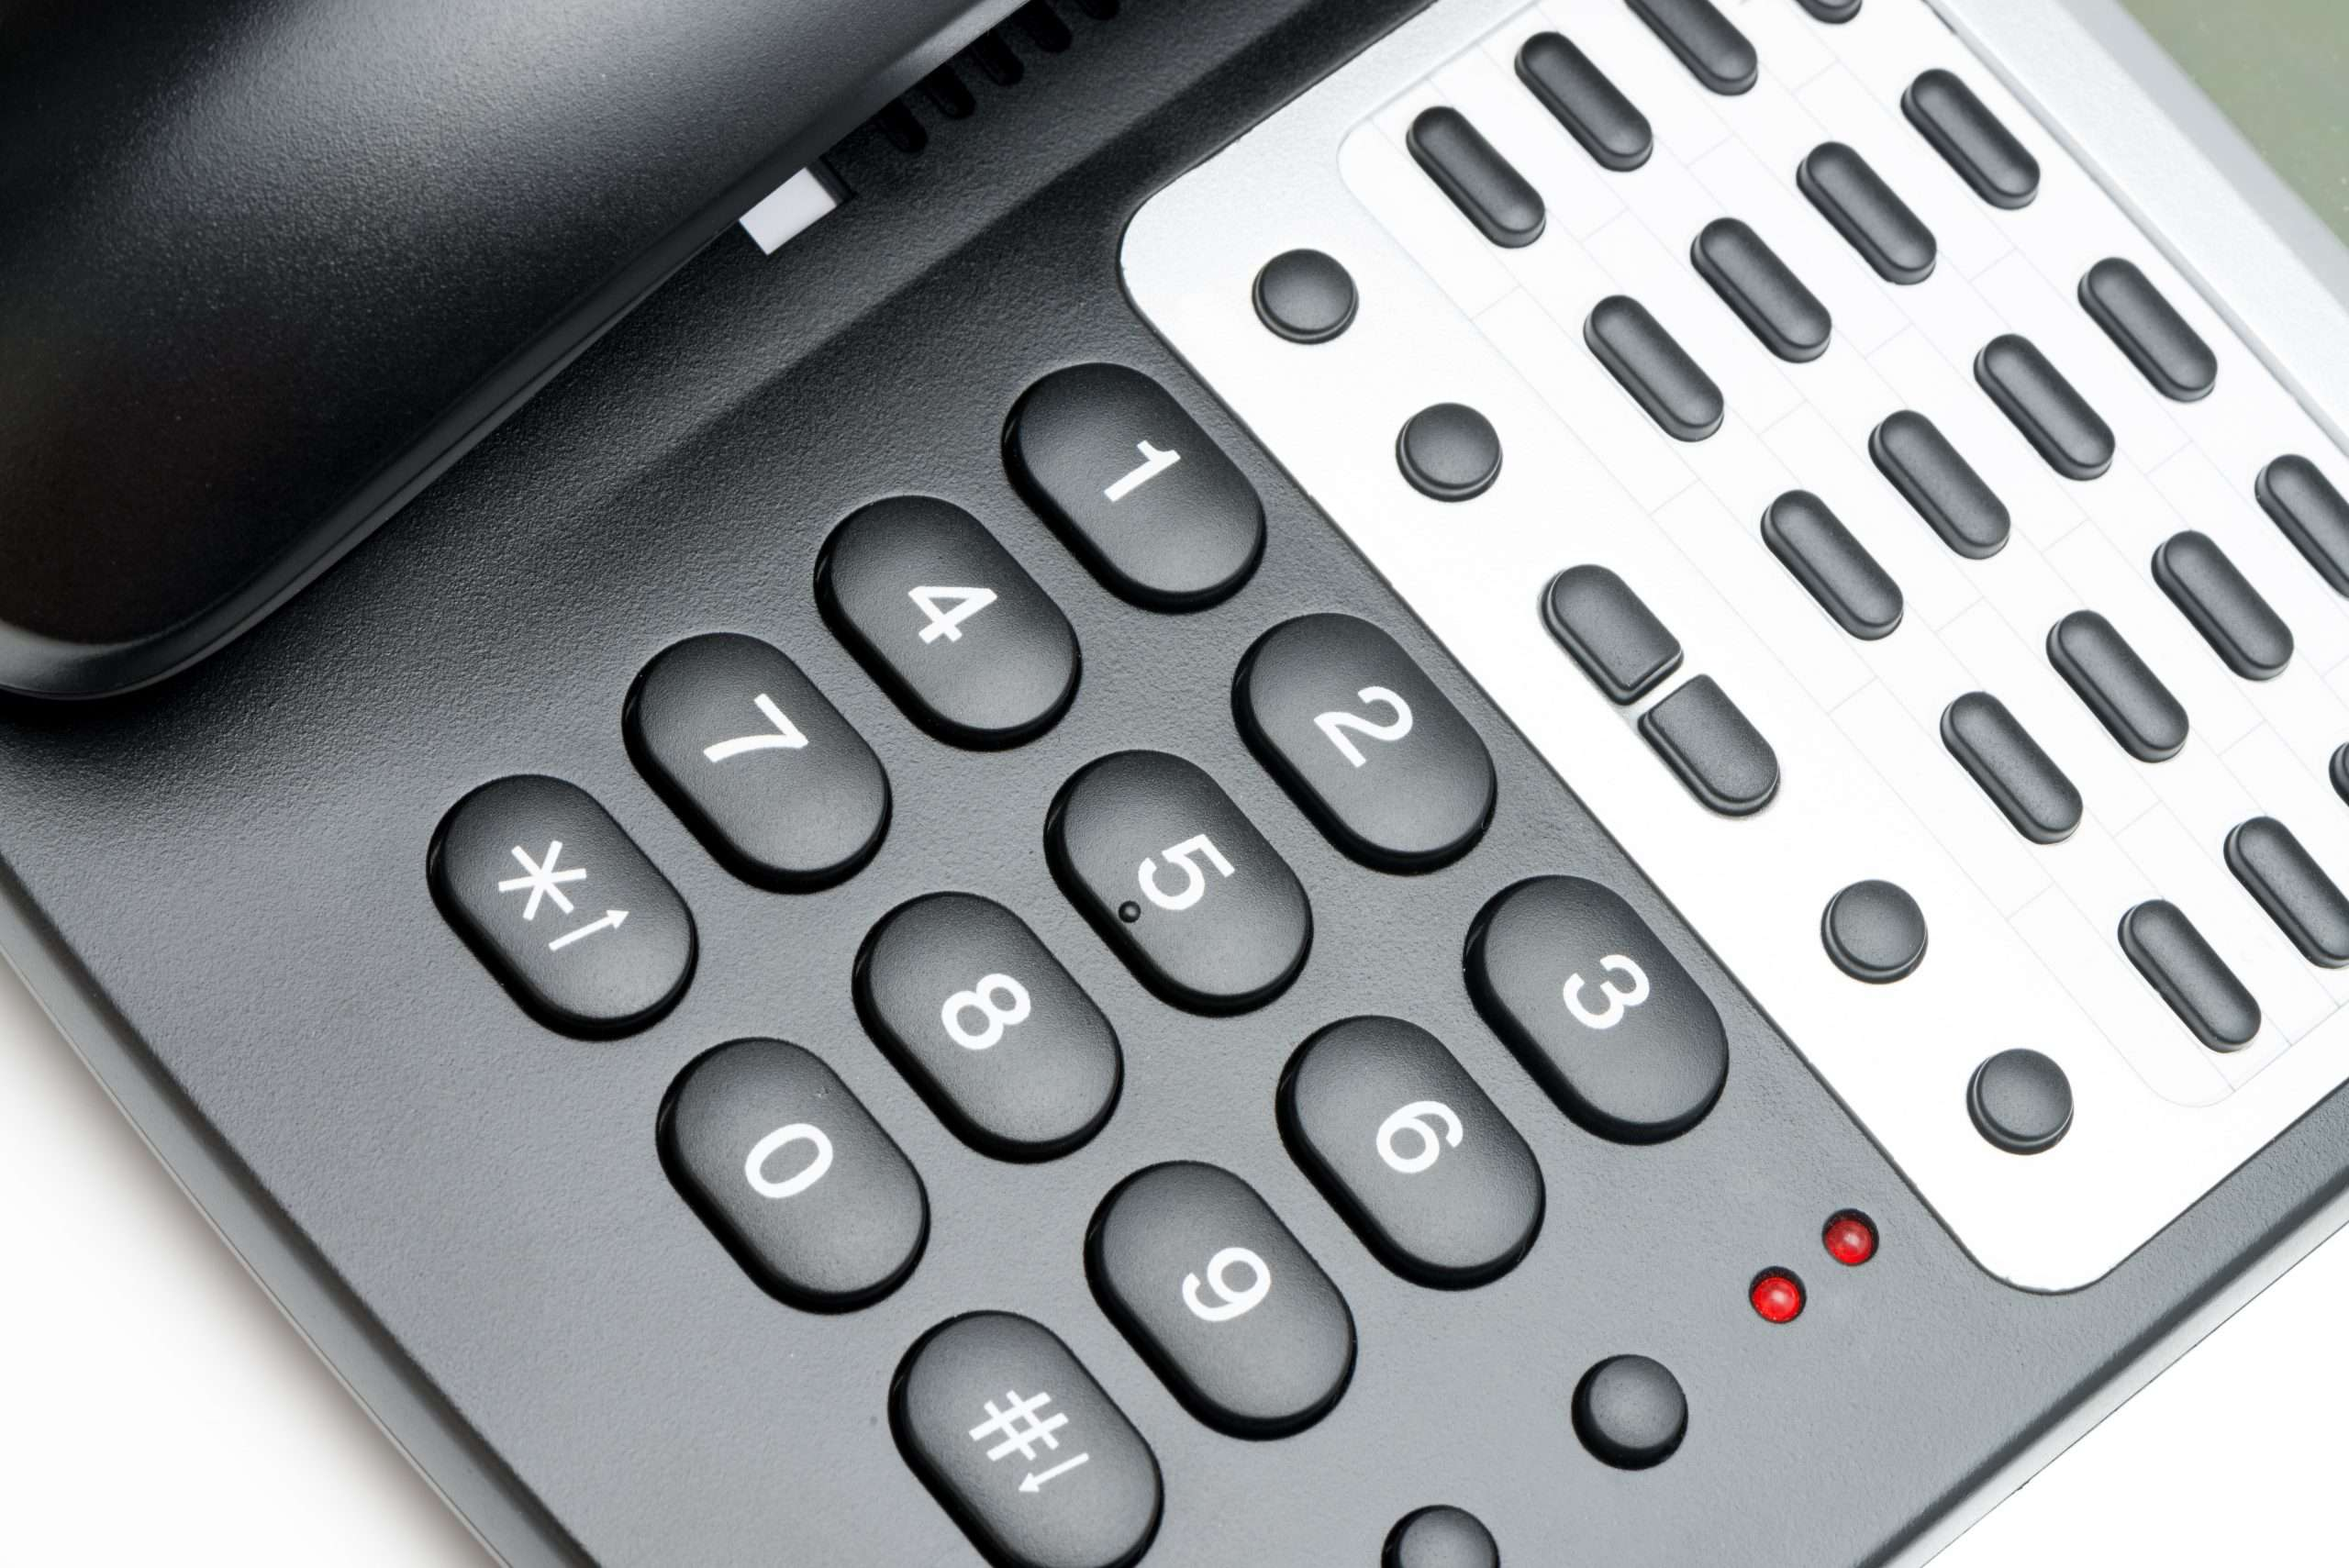 A close up of an office phone